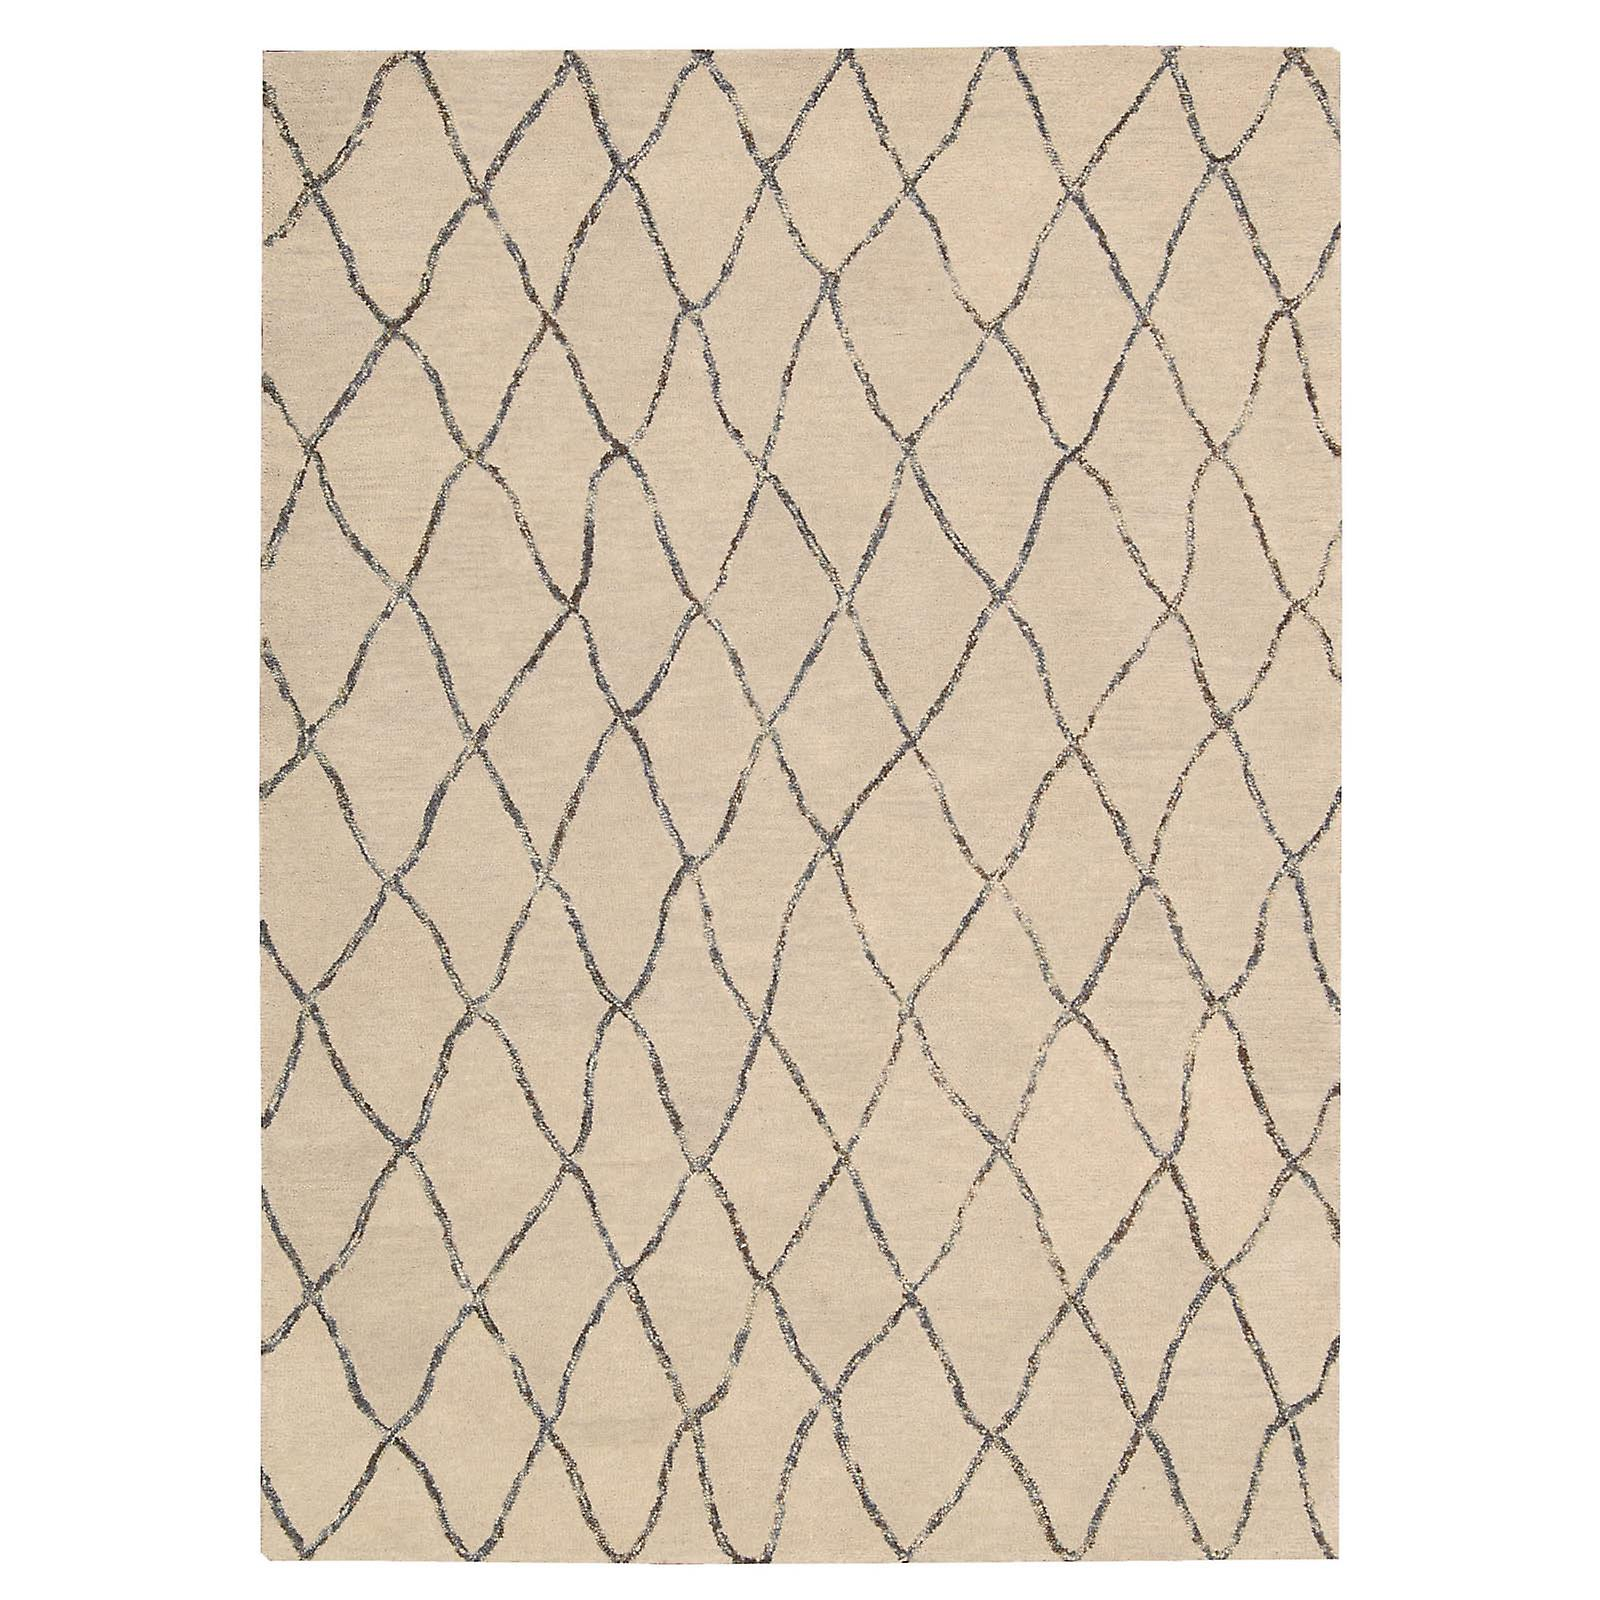 Intermix Rugs Int02 In Sand By Barclay Butera